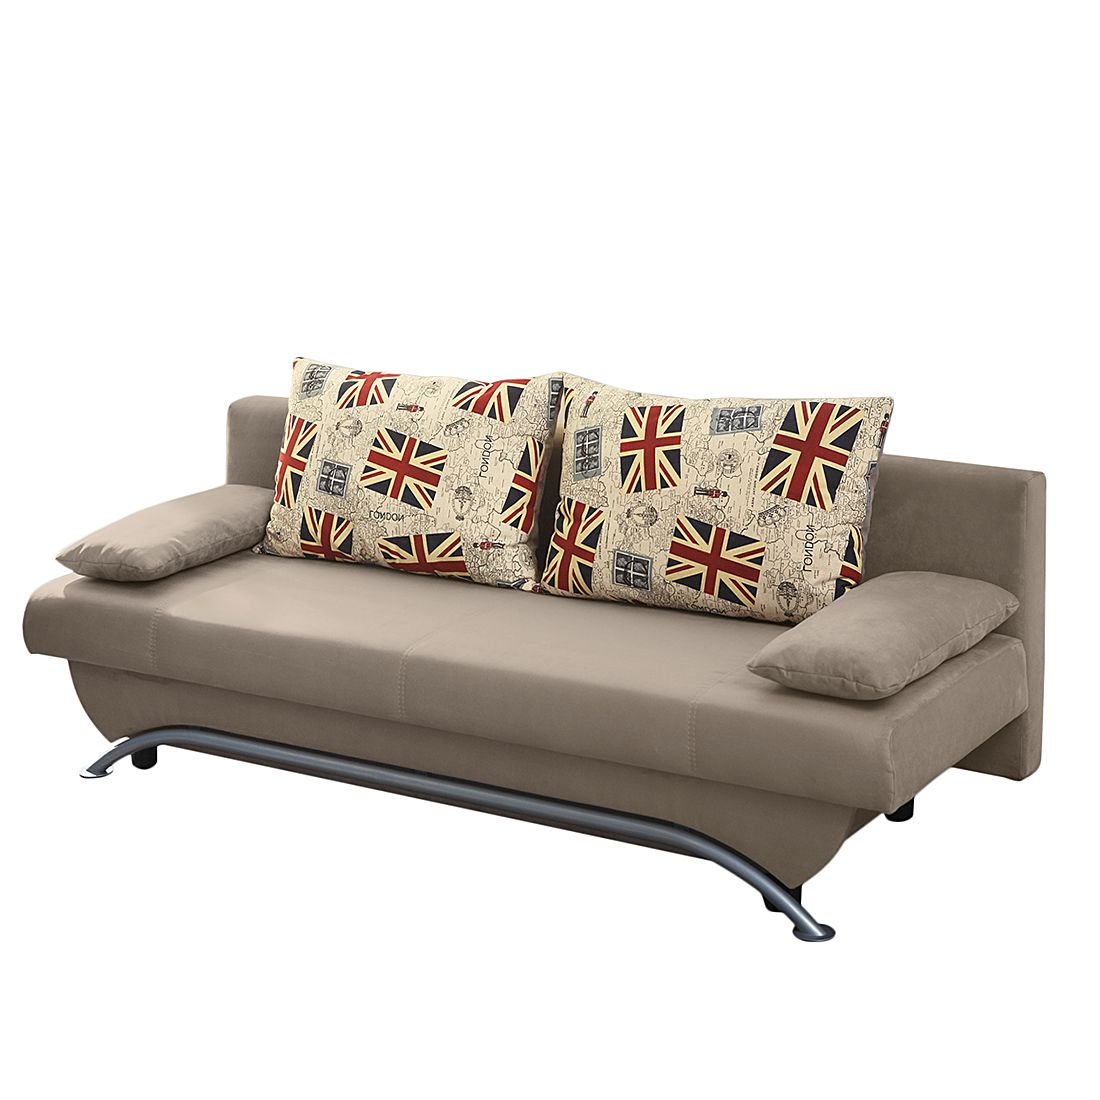 Dossier guide d 39 achat for Schlafsofa betty